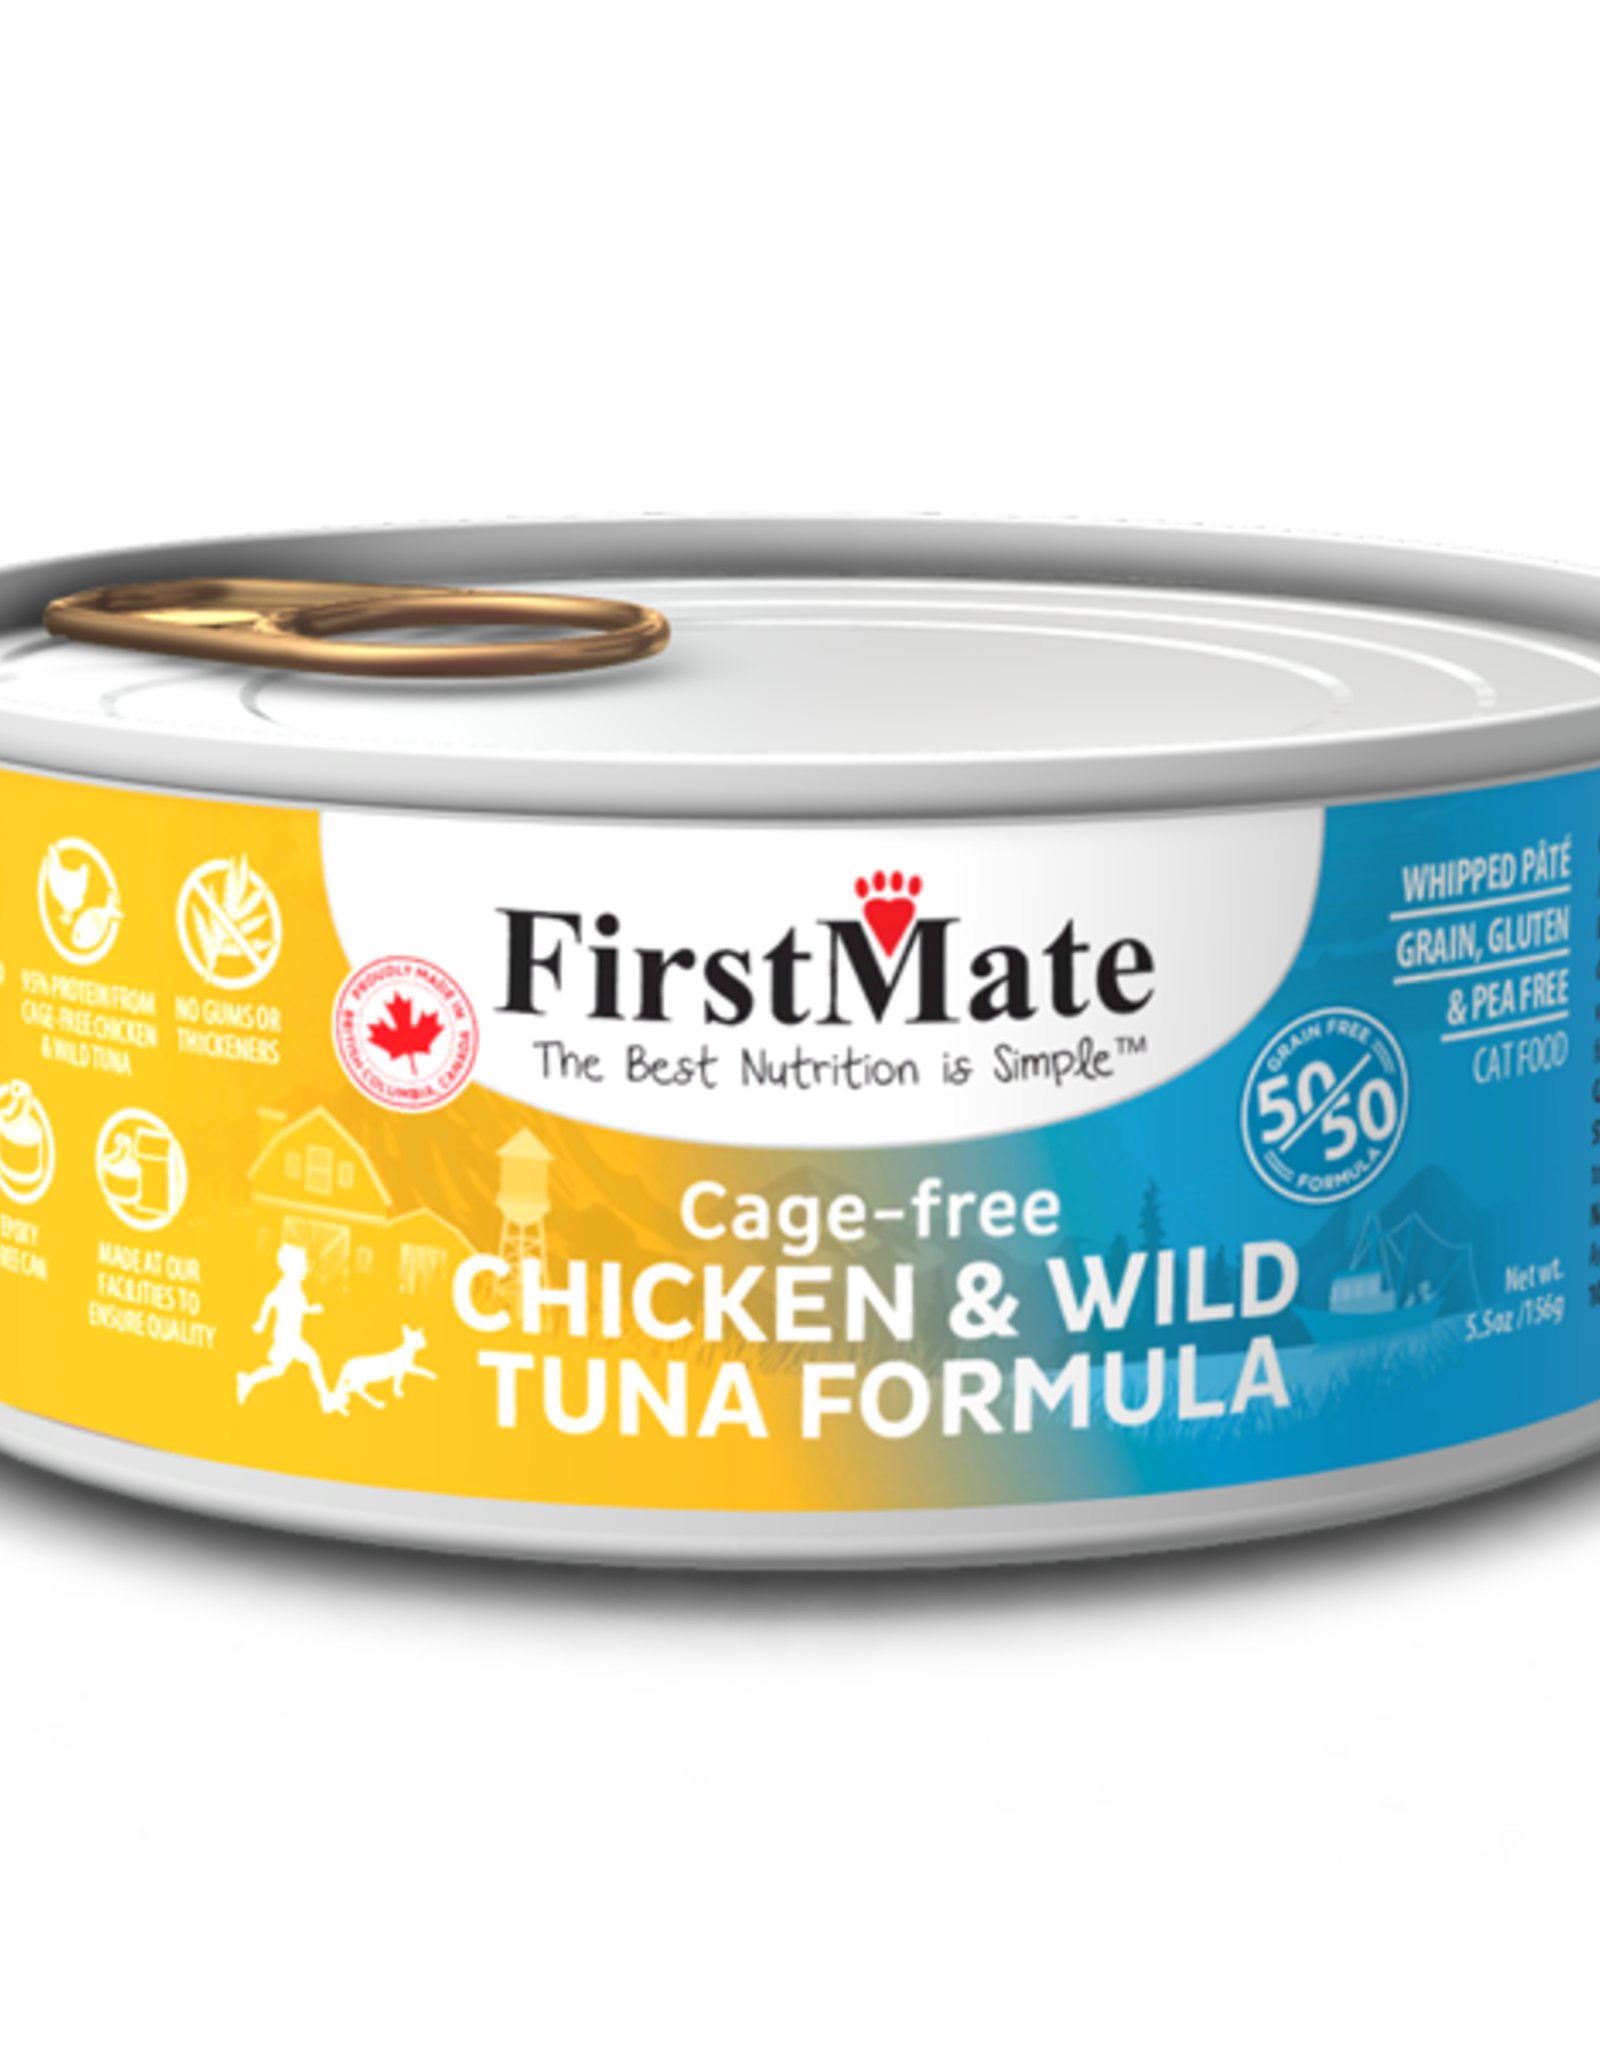 First Mate FirstMate Cat GF 50/50 Cage Free Chicken/Wild Tuna 5.5 oz